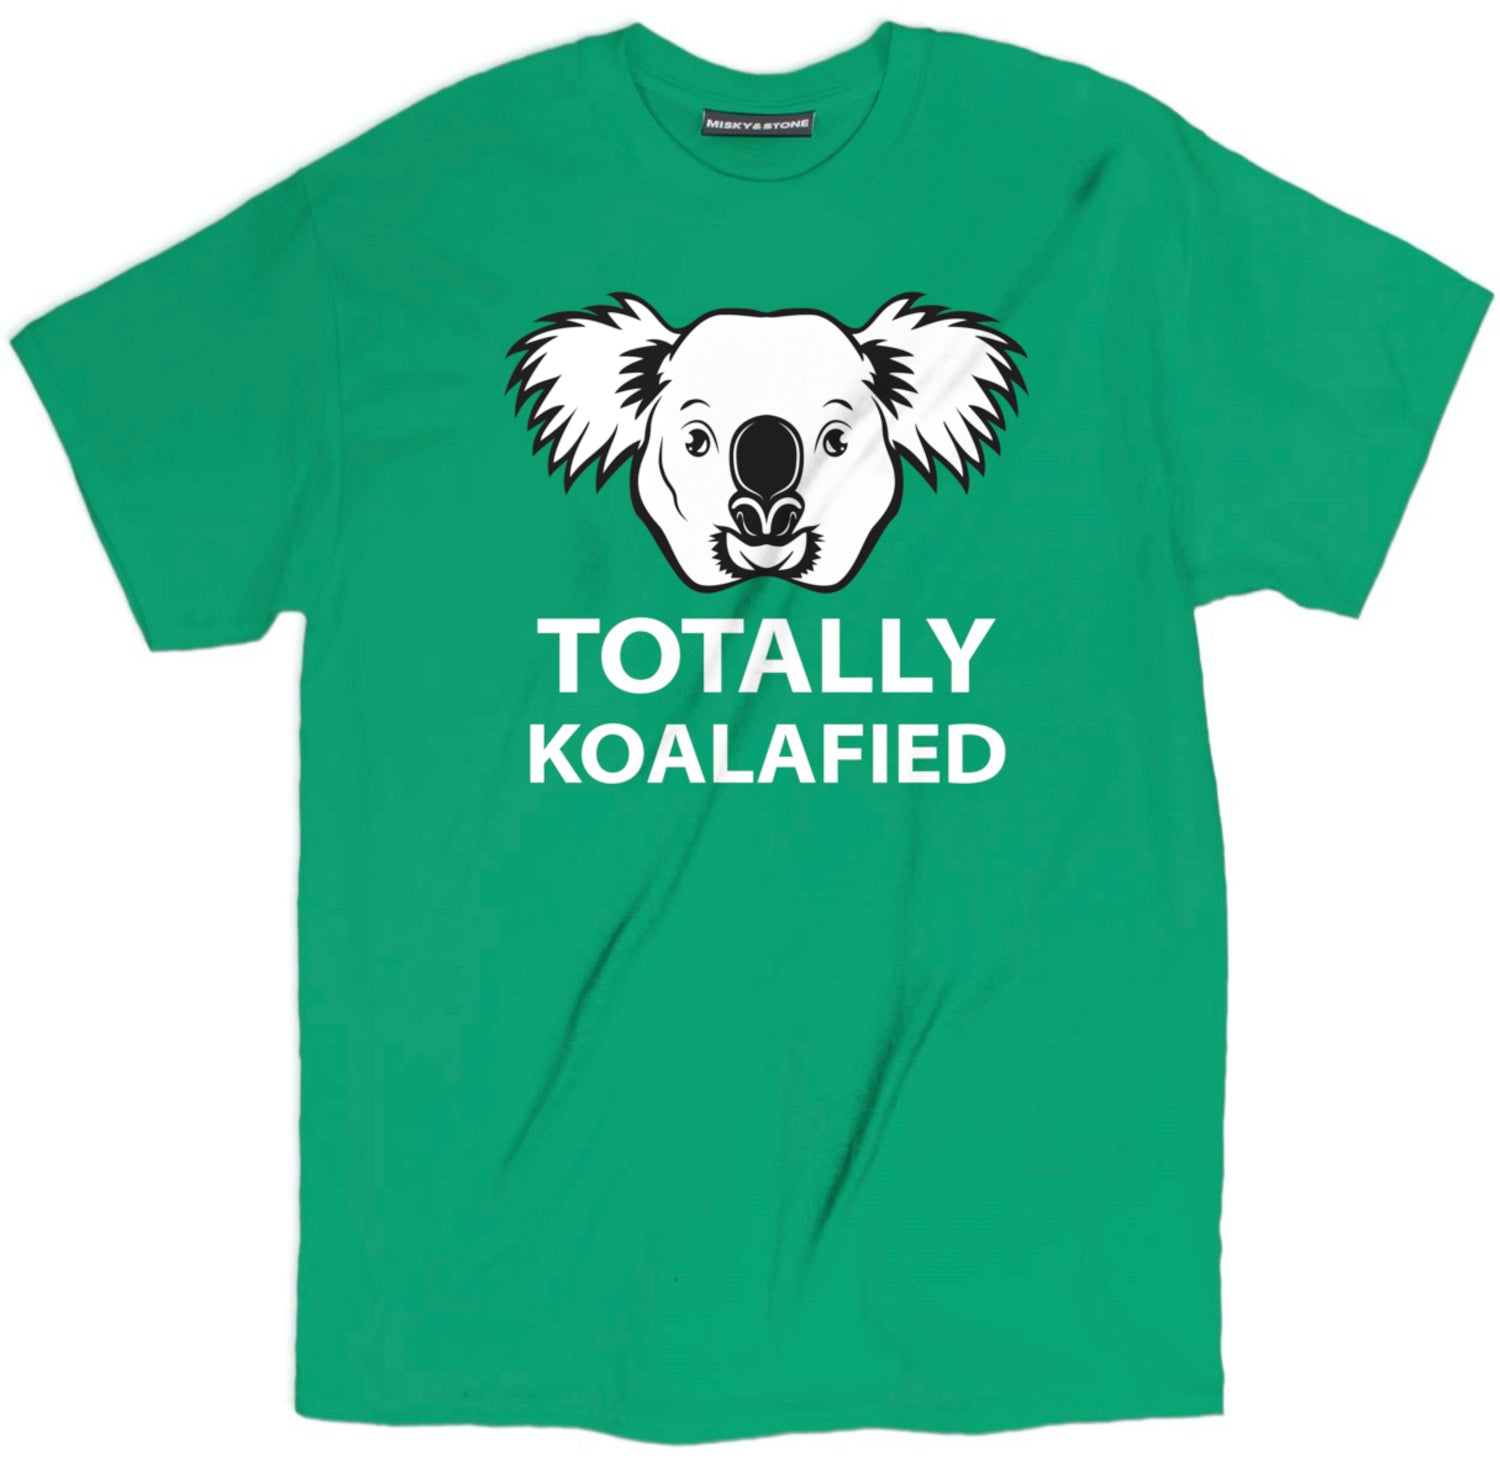 Totally Koalafied shirt, Koala shirt,  Koala T shirt, animal lovers shirts, funny animal shirts, animal shirts, animal t shirts, animal tees, animal tee shirts, animal tee shirts, animal face t shirts, animal graphic tees, cool animal shirts